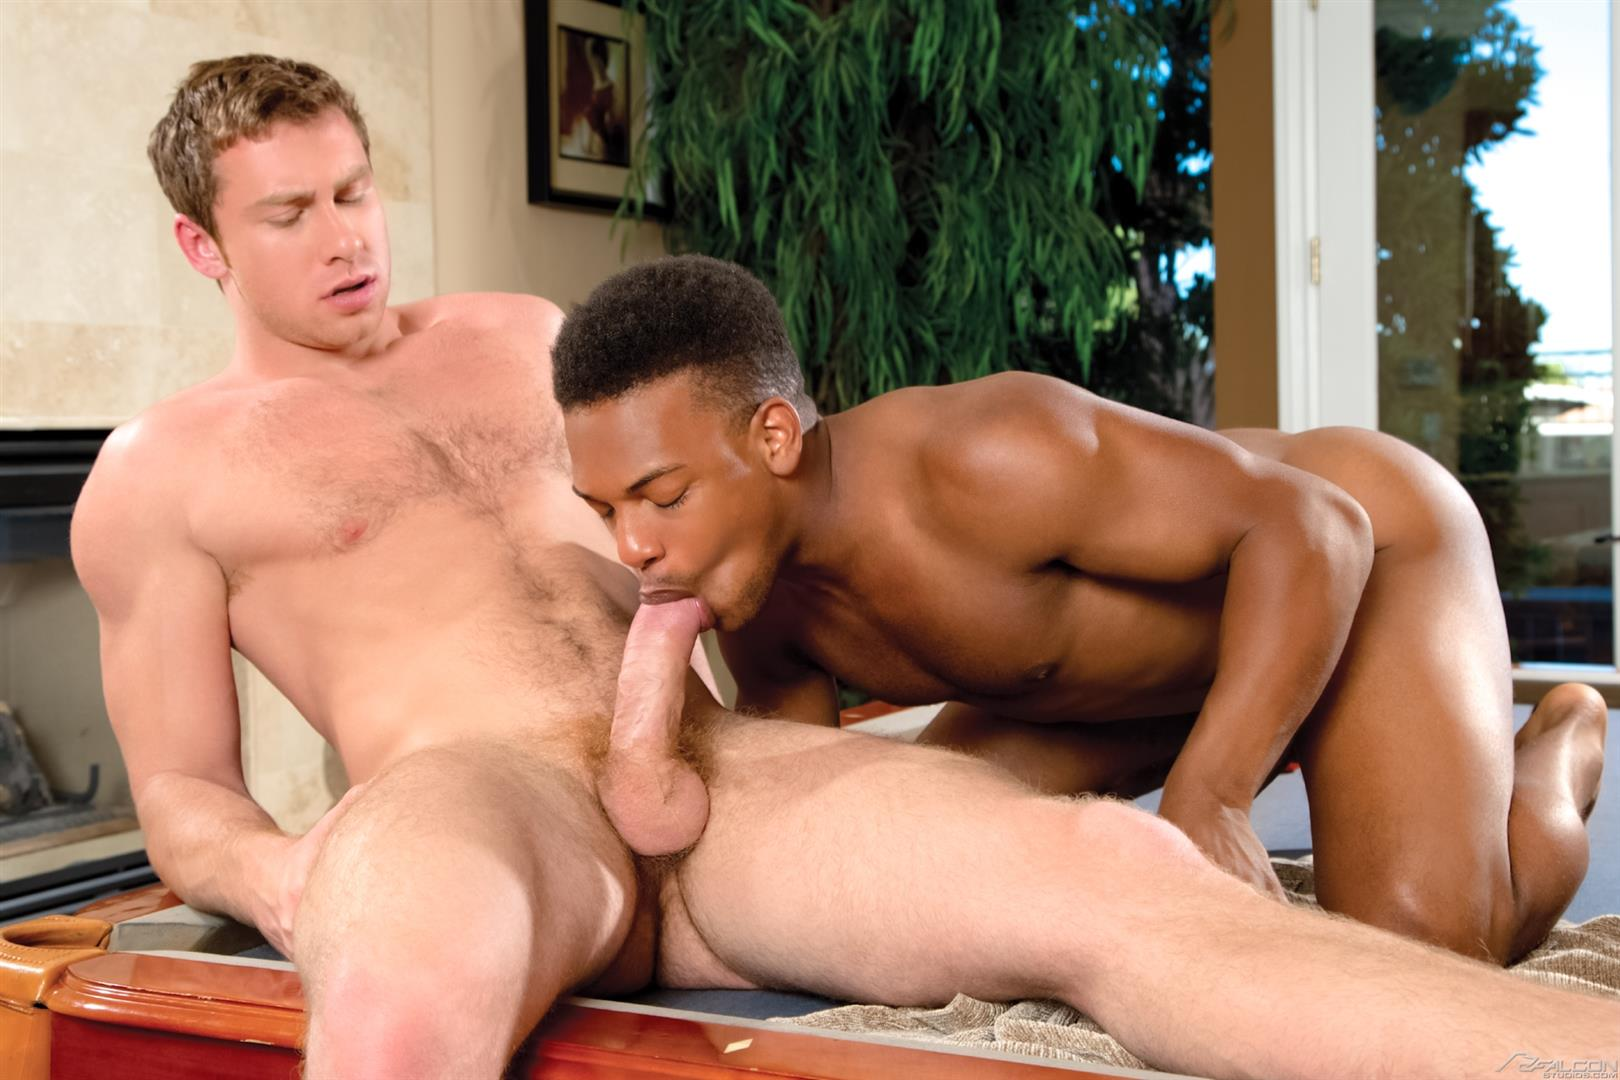 Black on white gay porn